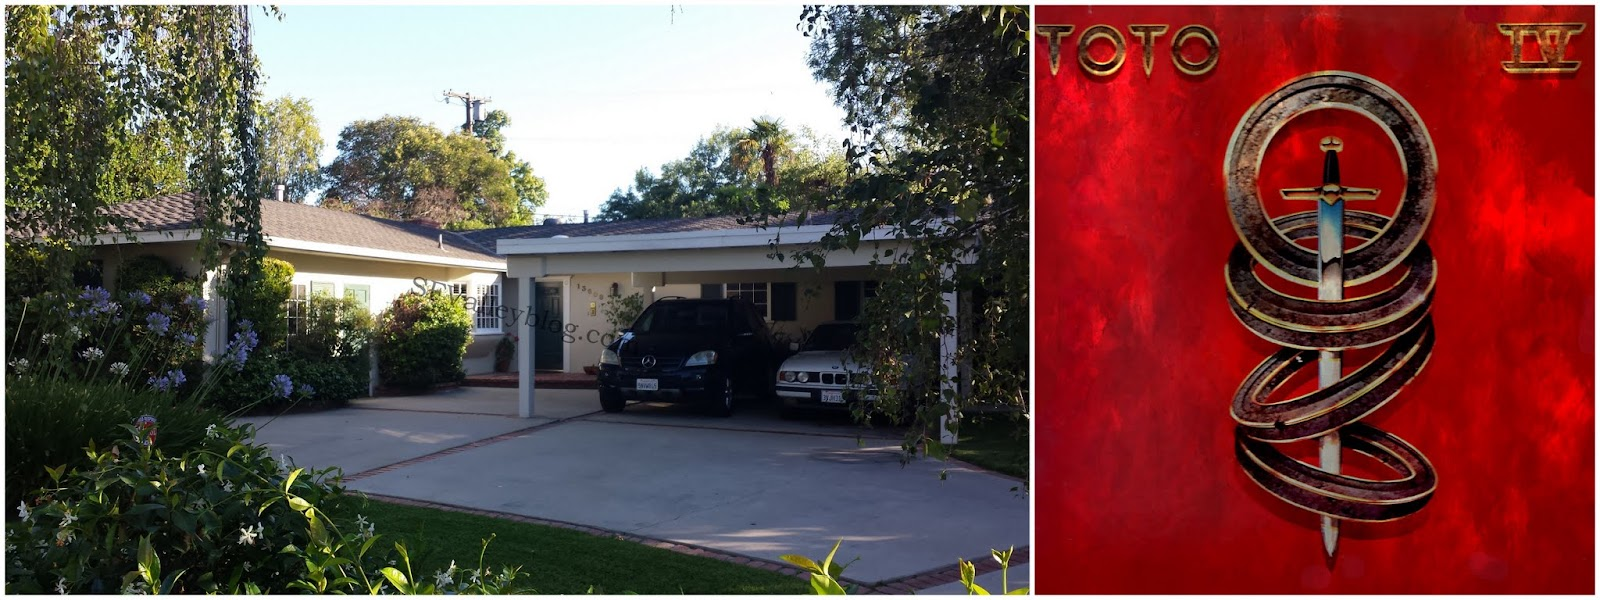 Bttf 29 Toto S Van Nuys Garage That Created Musical